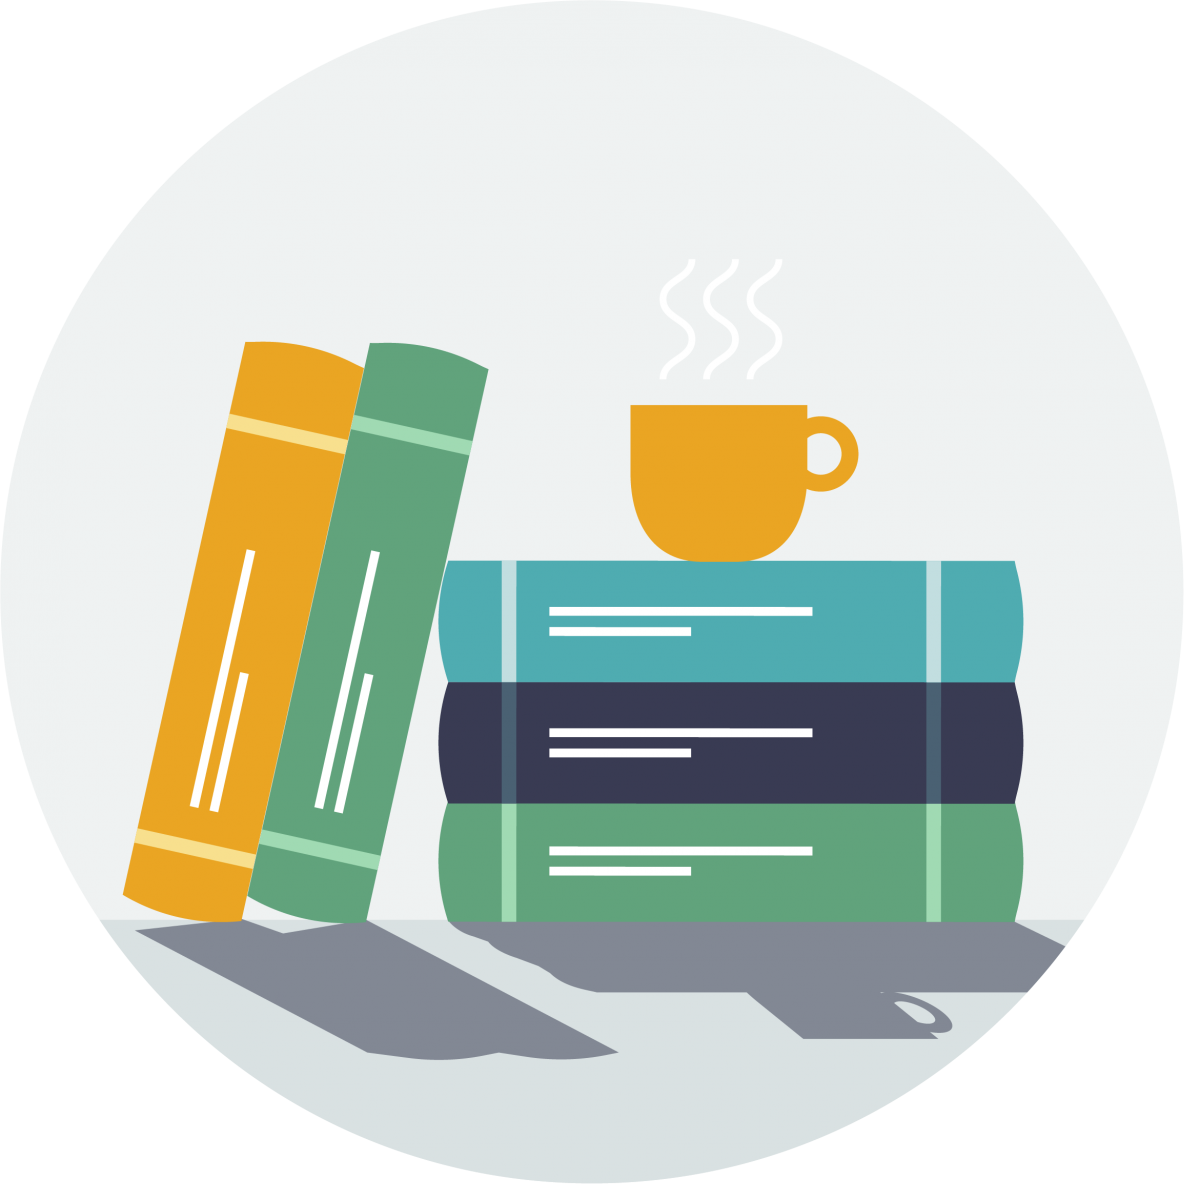 Image of books with a cup on top